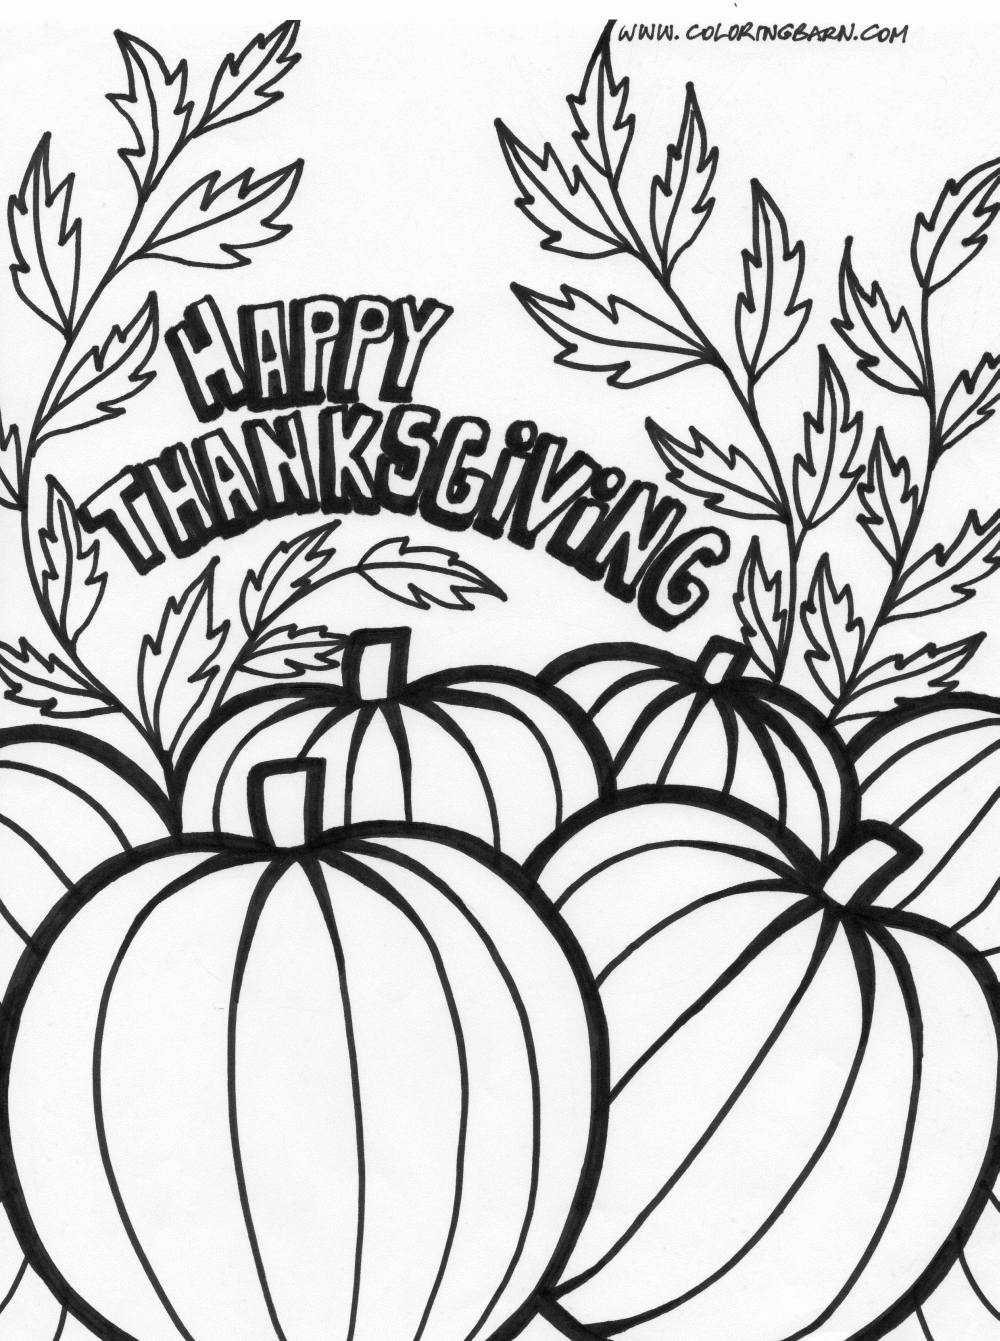 Thanksgiving pumpkin coloring pagecontinue reading artcolor my